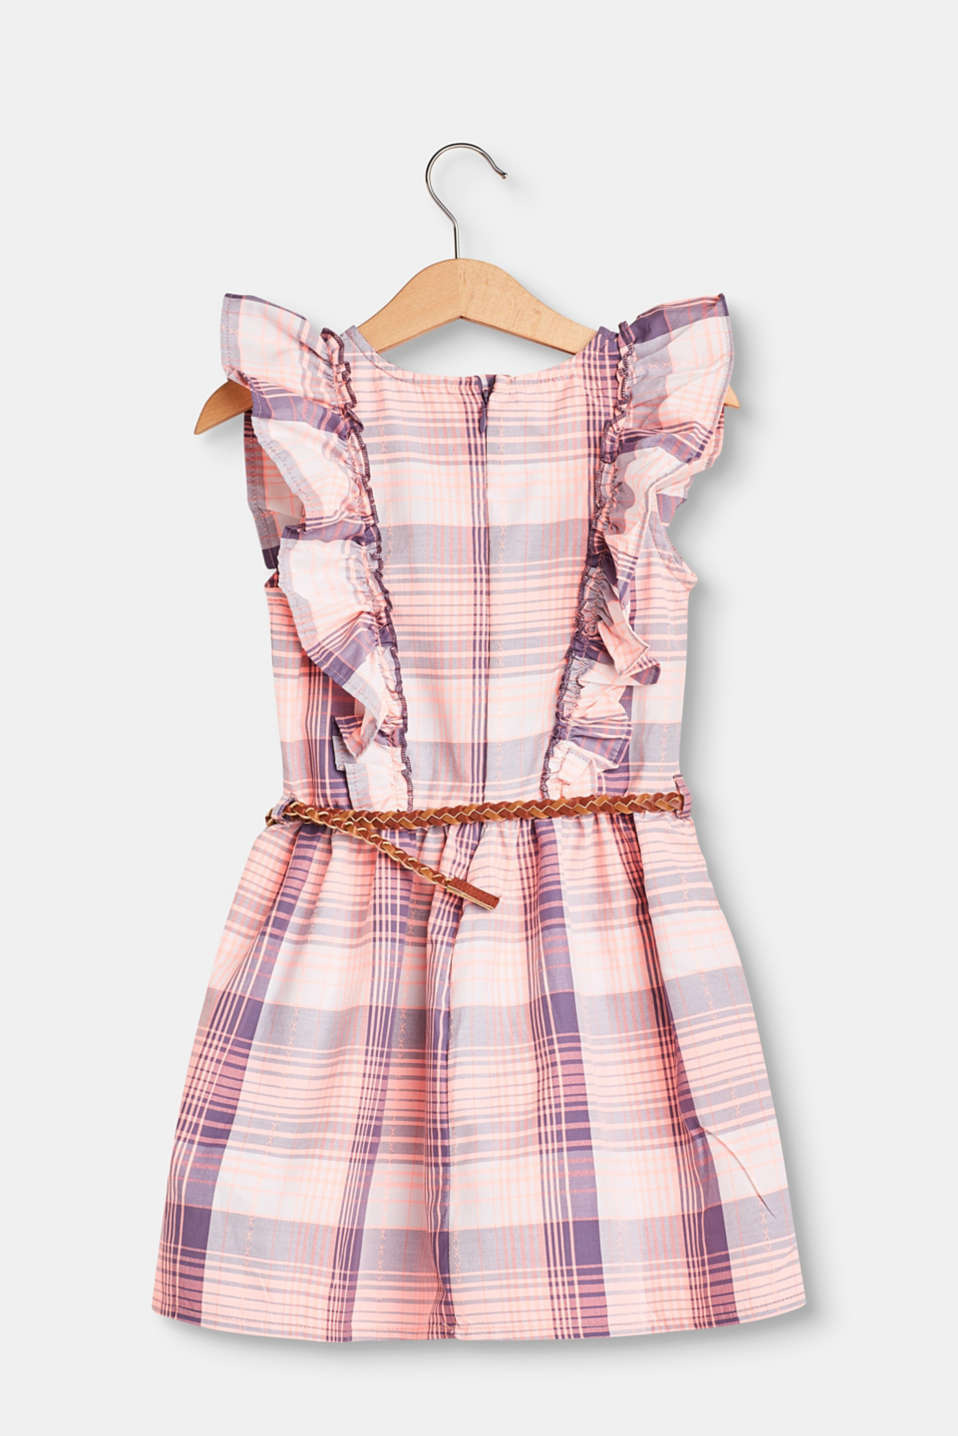 Checked dress with flounces and a belt